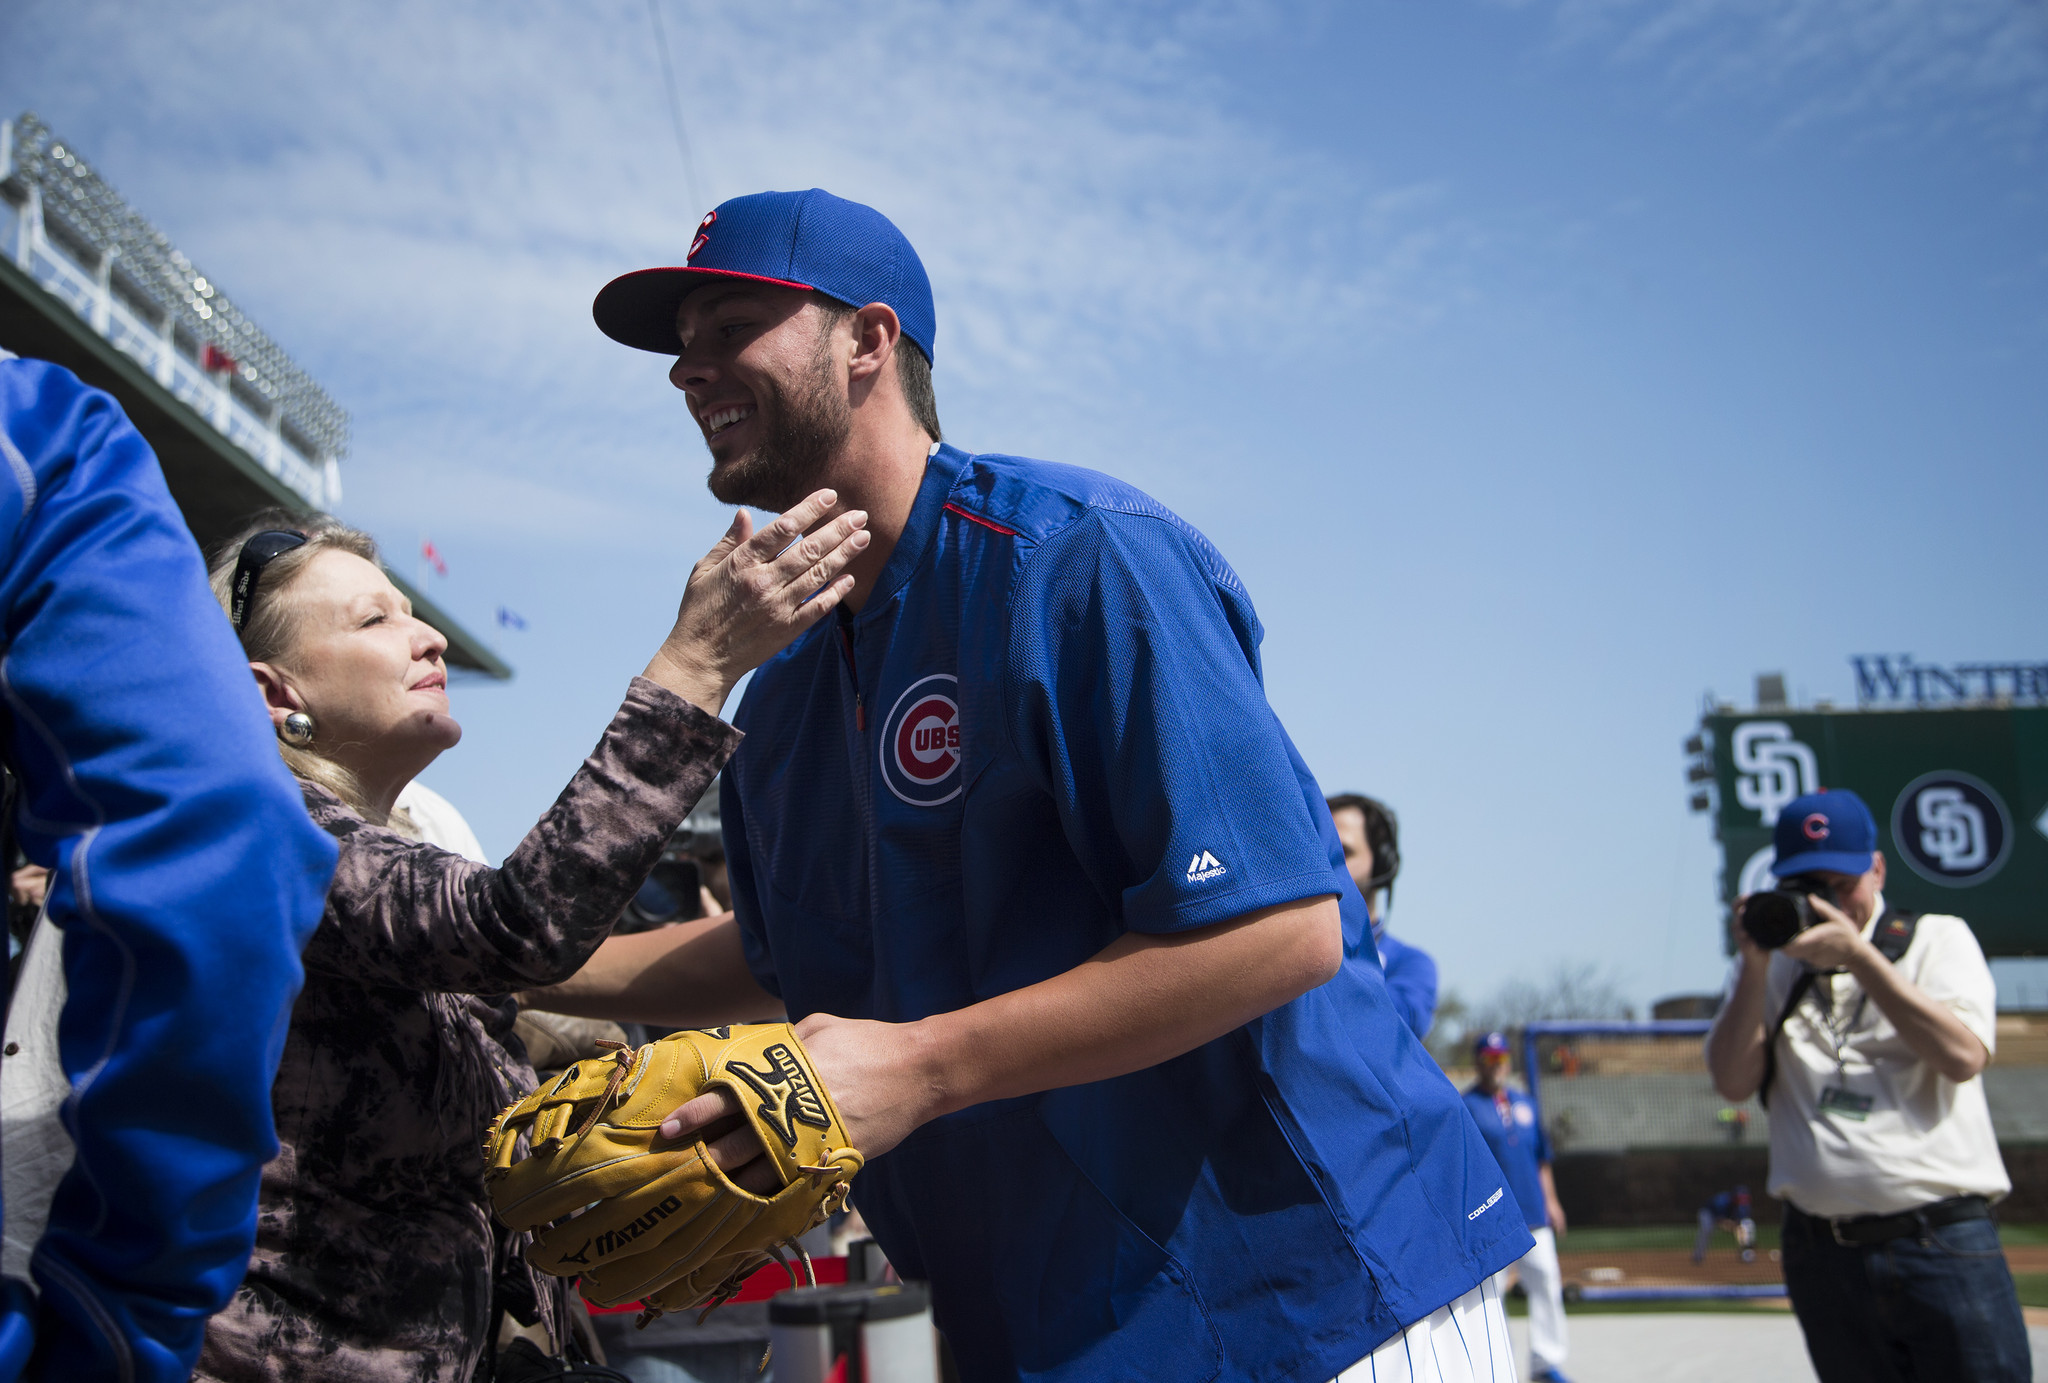 Kris Bryant Won T Let Endorsements Get In The Way Of